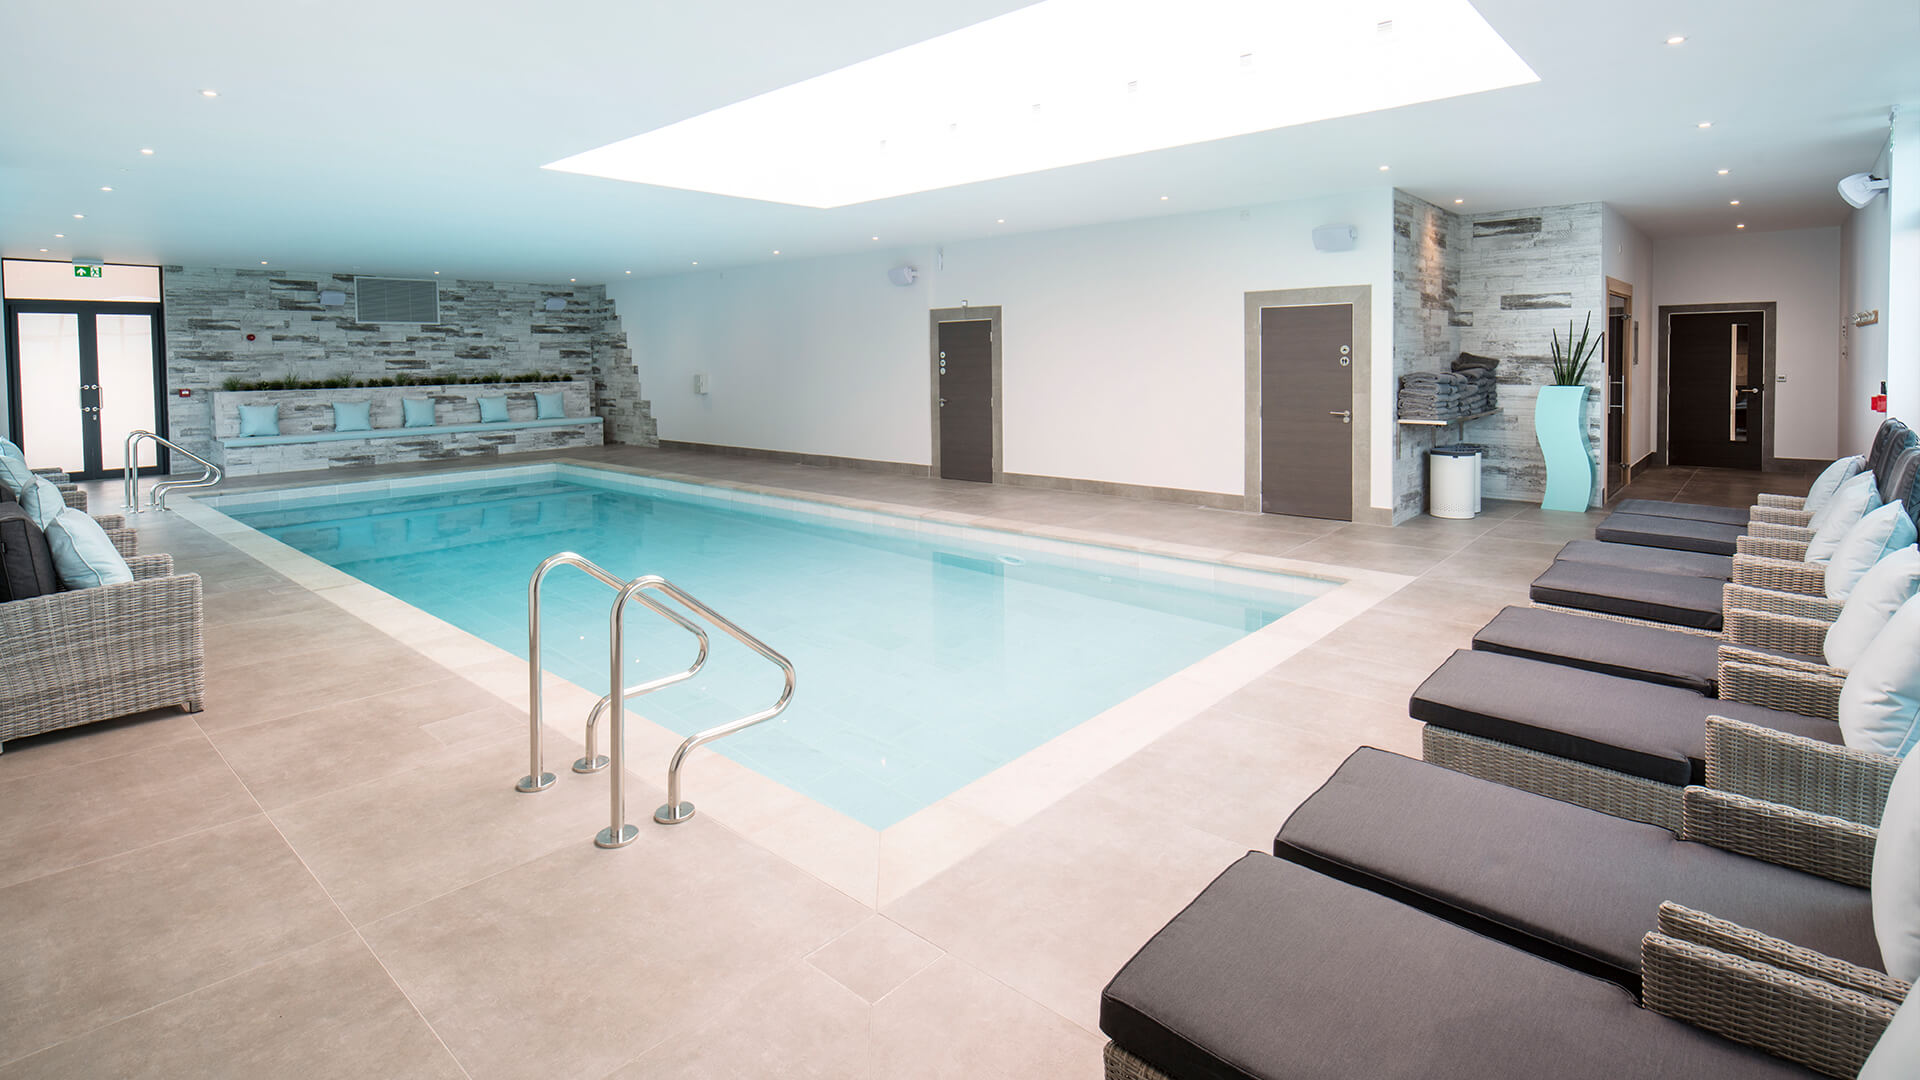 Guests can relax in the twelve-metre indoor heated swimming pool and enjoy treatments from expert therapists.